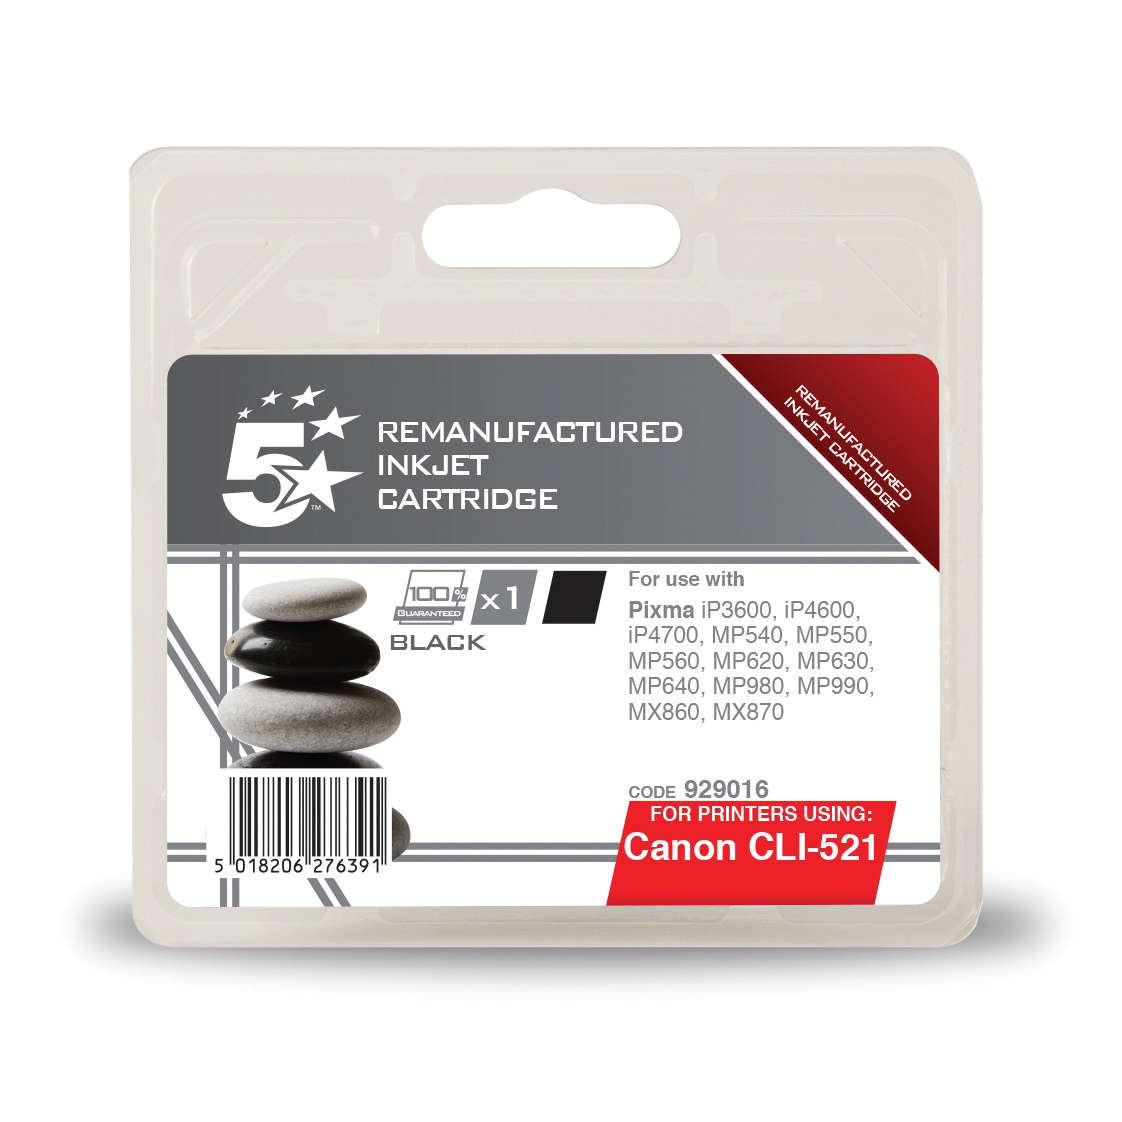 Inkjet Cartridges 5 Star Office Remanufactured Inkjet Cartridge Page Life 3425pp 9ml Black Canon CLI-521BK Alternative